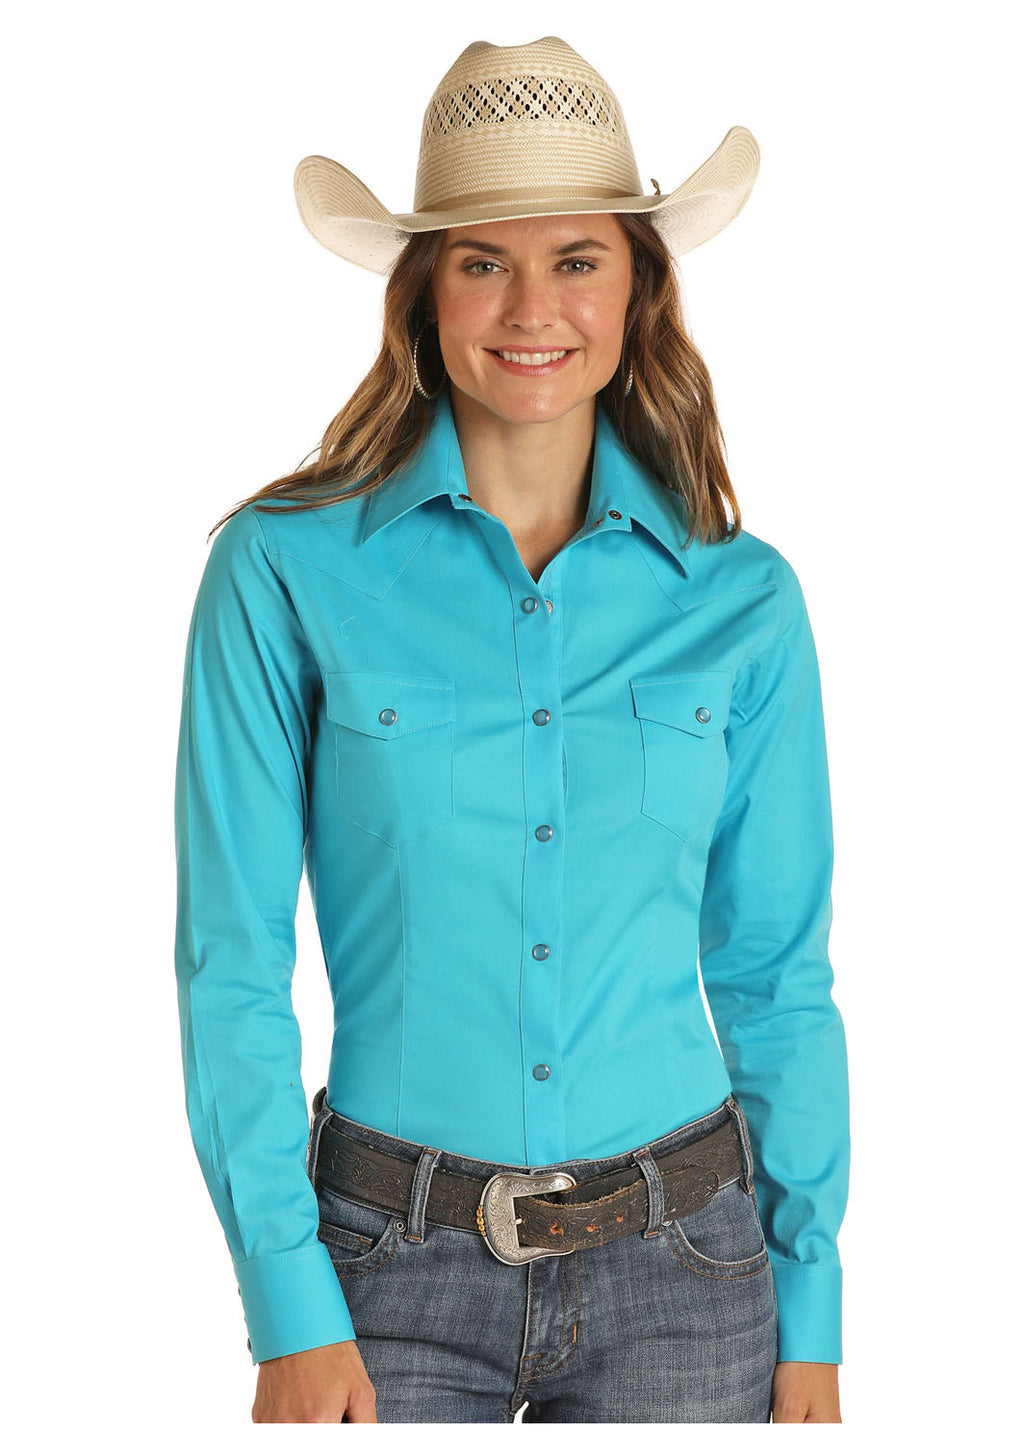 Panhandle Long Sleeved Shirt - Turquoise (22S8041)